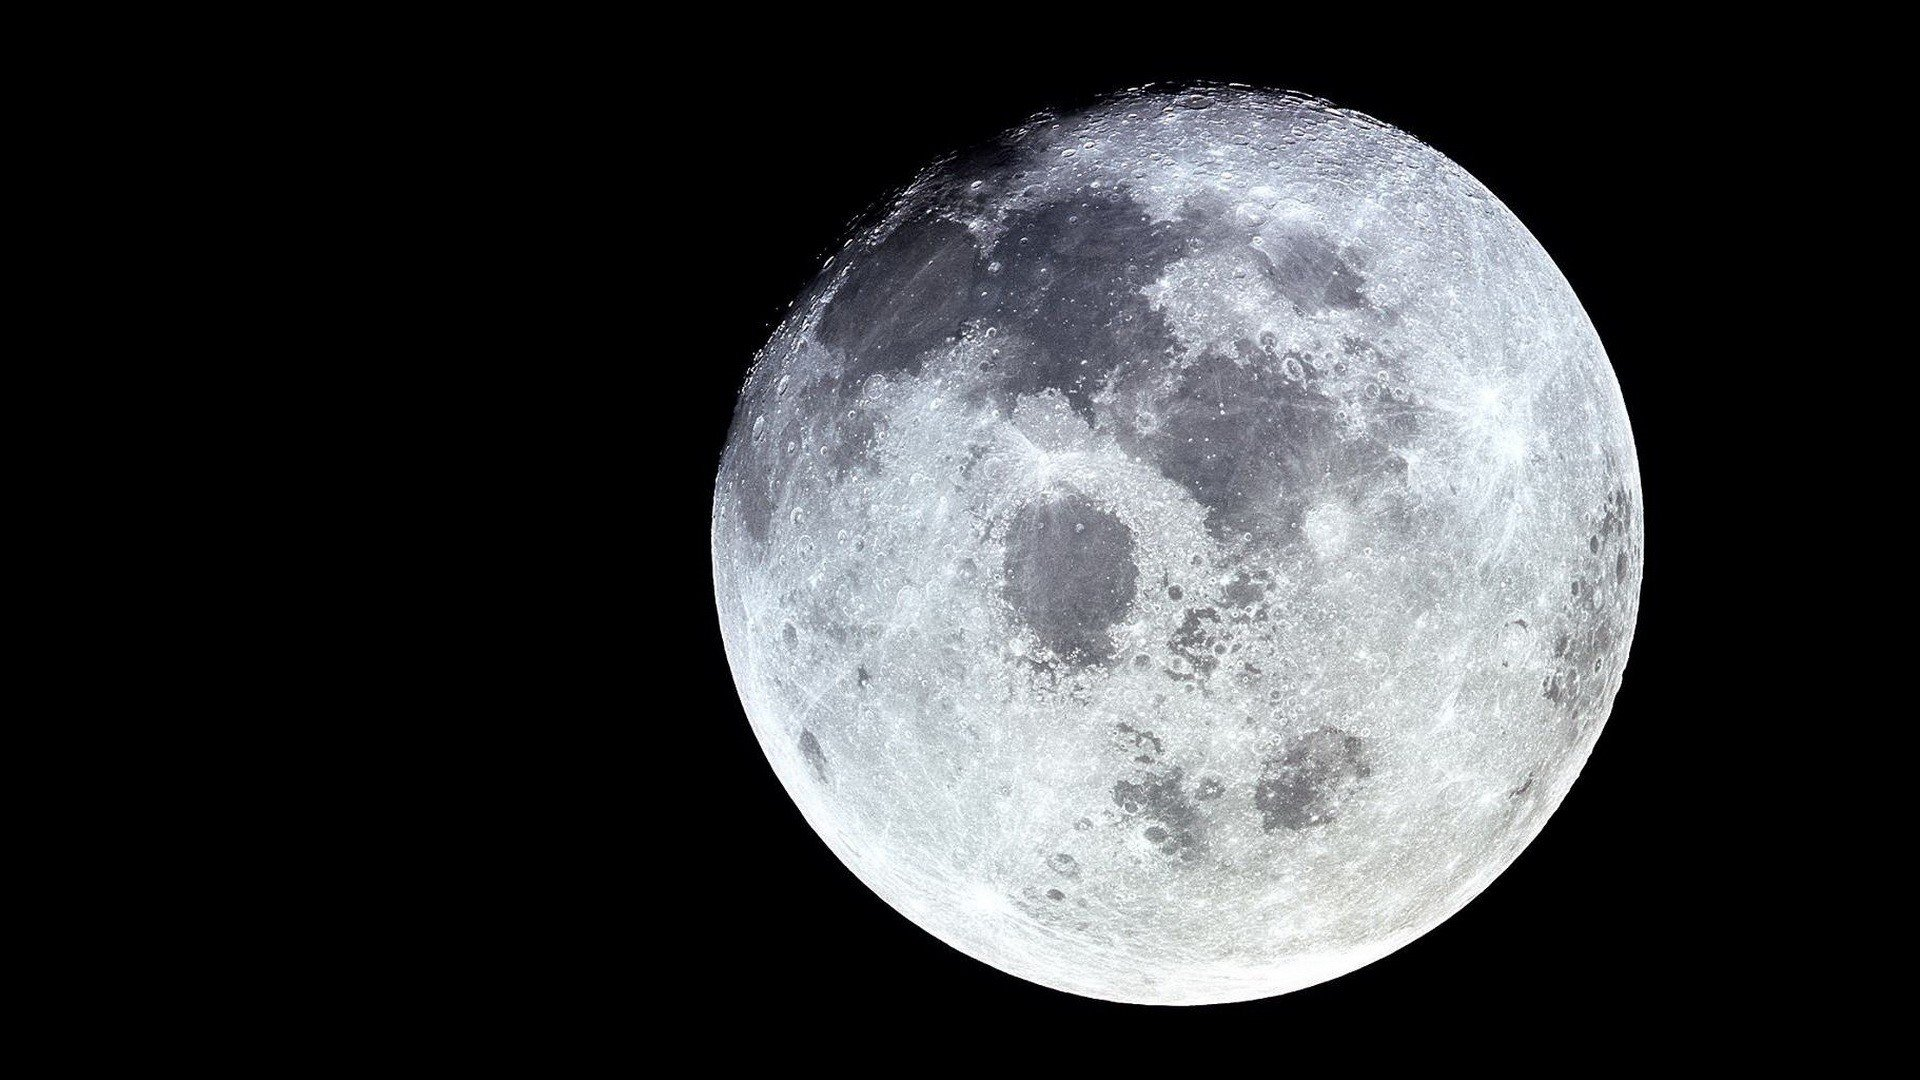 Science outer space moon nasa astronomy astronauts - Nasa space wallpaper 1920x1080 ...